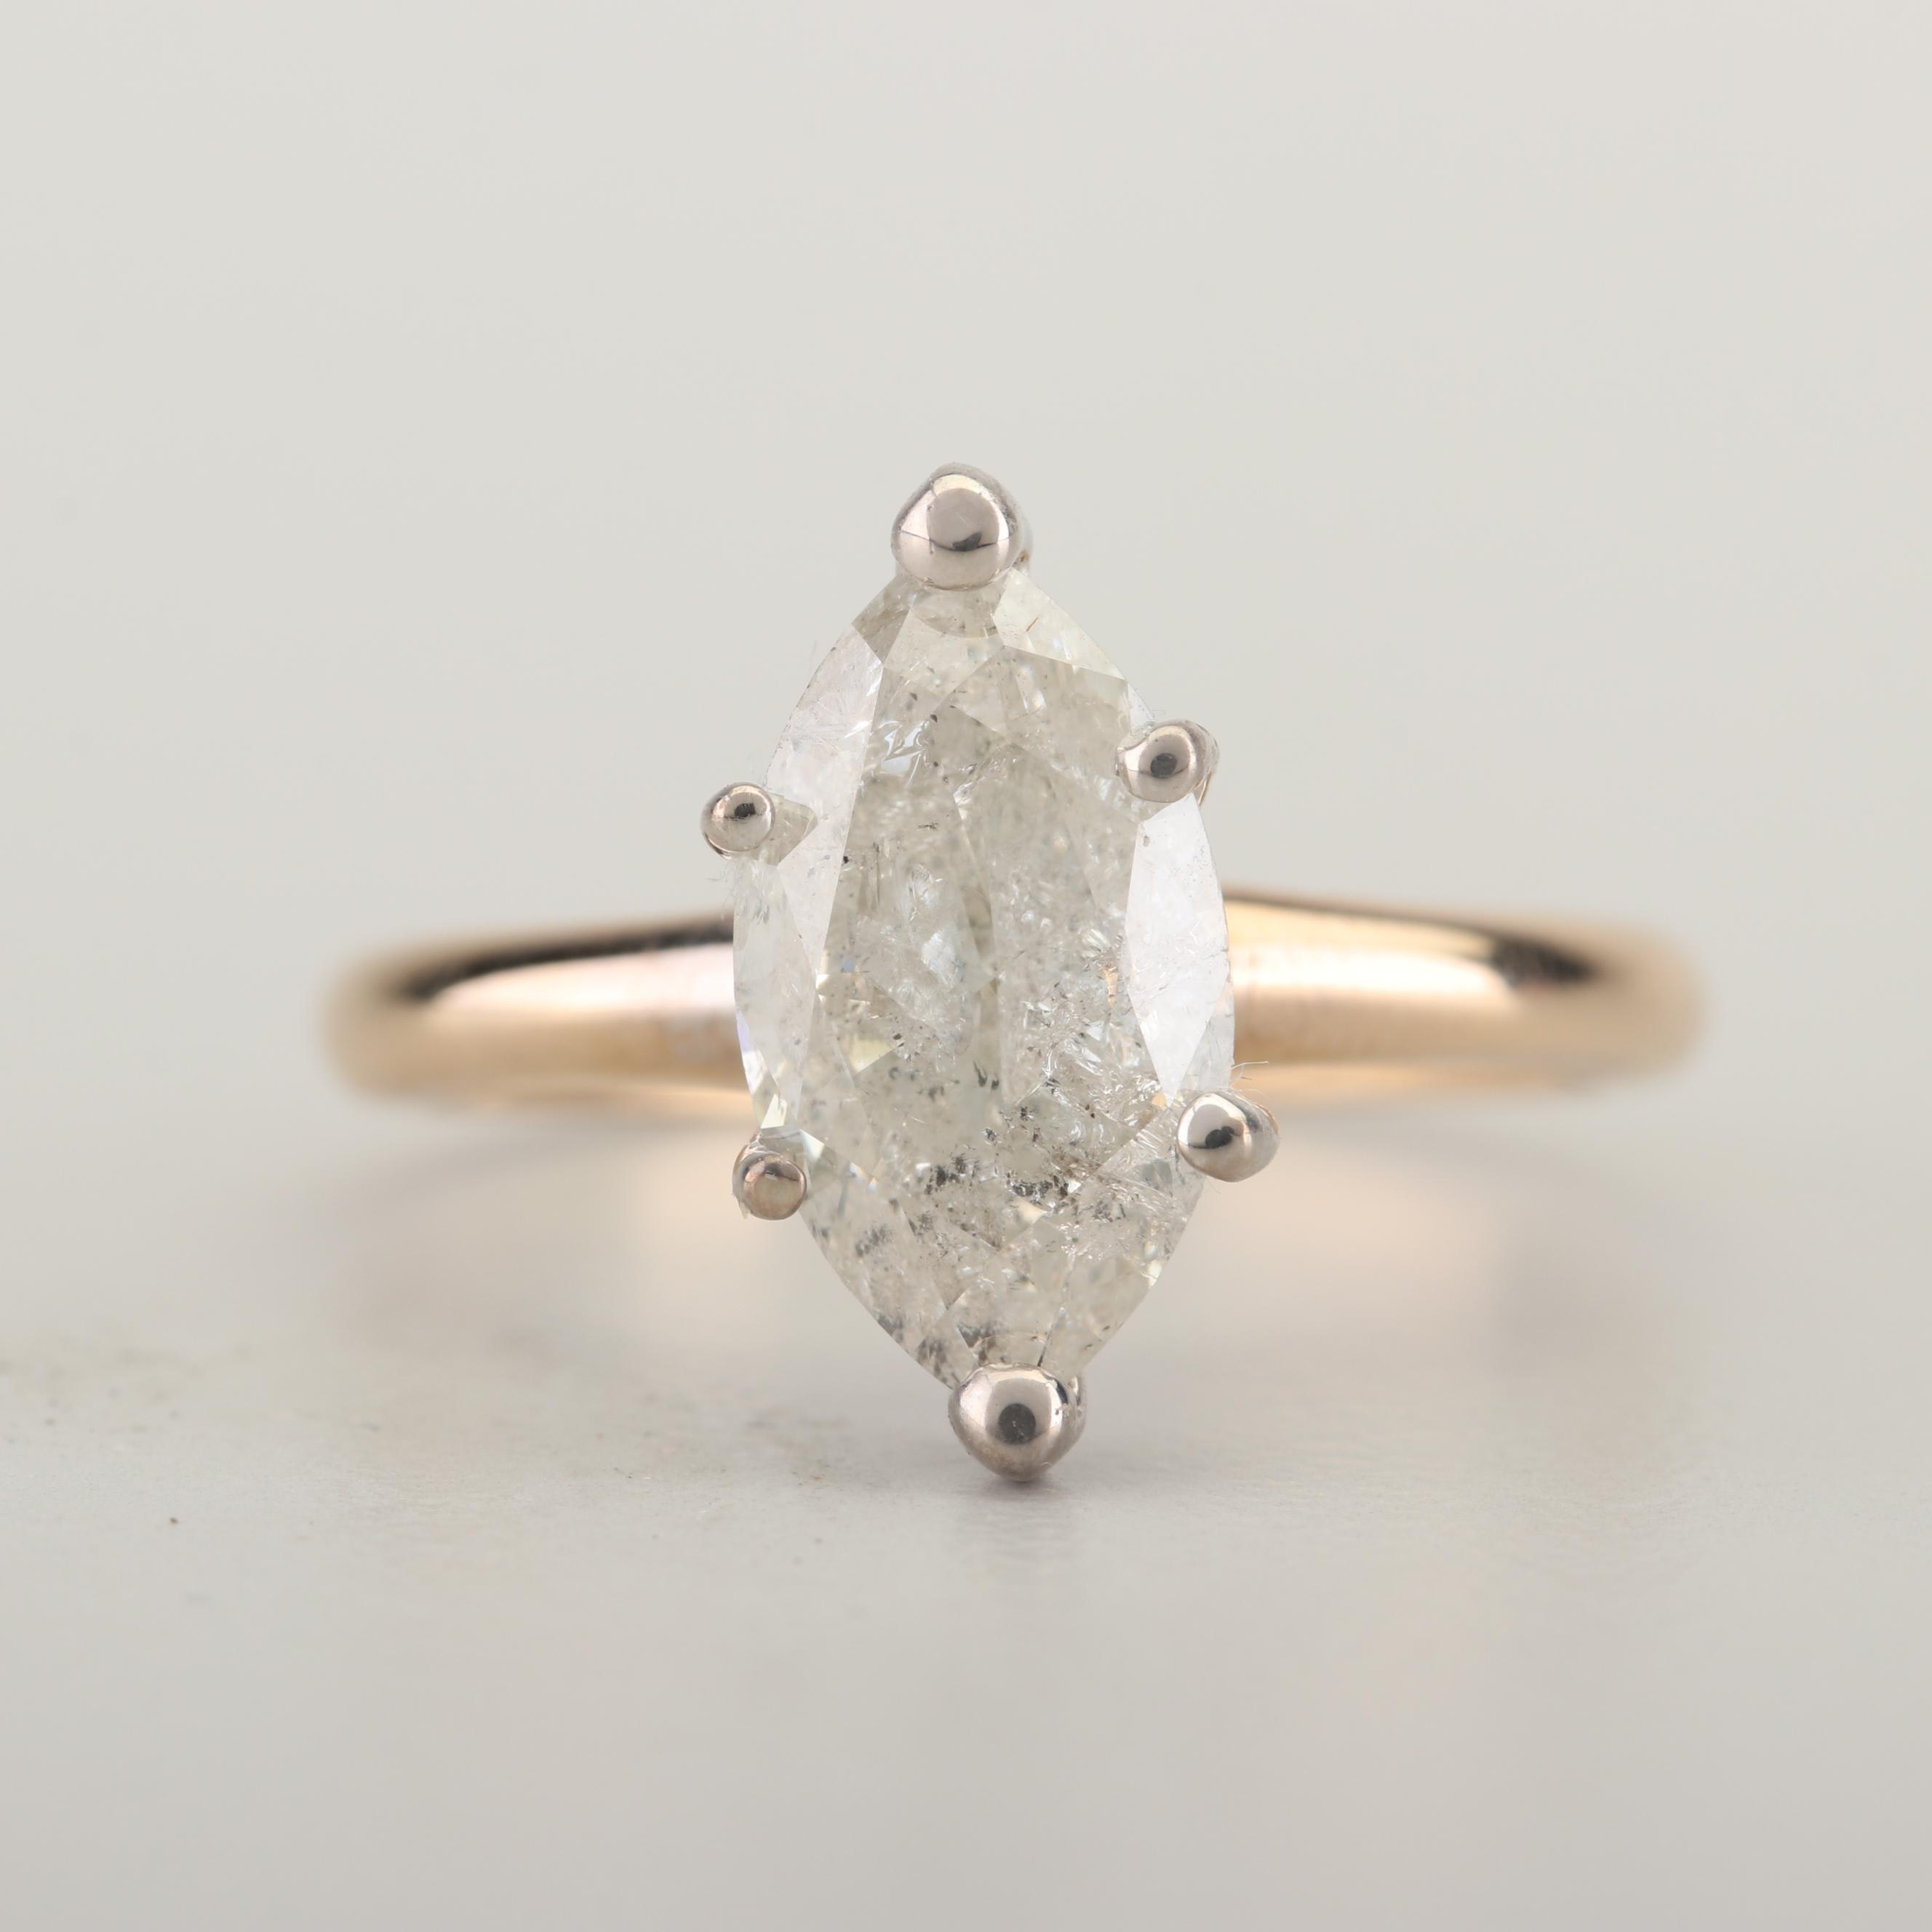 14K Yellow Gold and 1.72 CT Marquise Cut Diamond Solitaire Ring with GIA Report